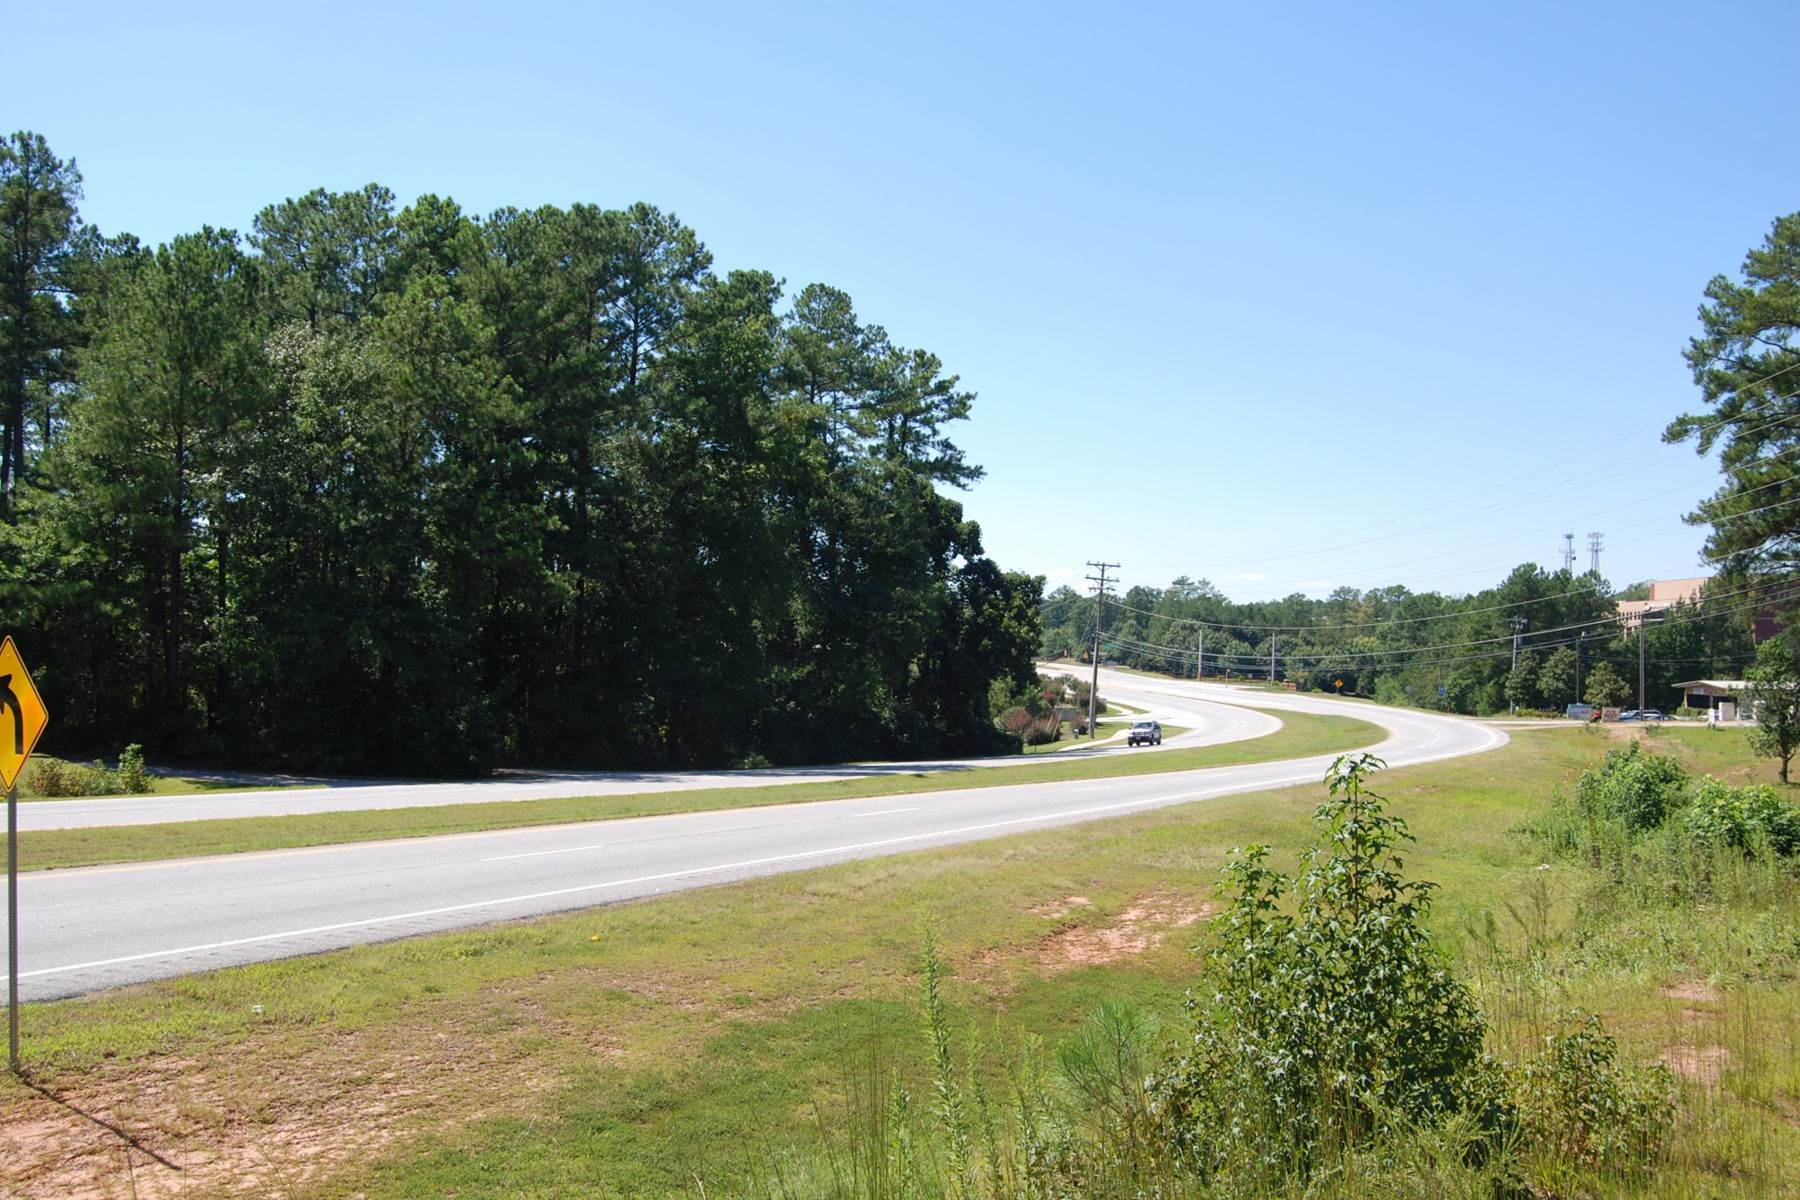 Land for Active at Prime Location - 12+/- Acres Across From Piedmont Fayette Hospital 1218 Highway 54 W Fayetteville, Georgia 30215 United States